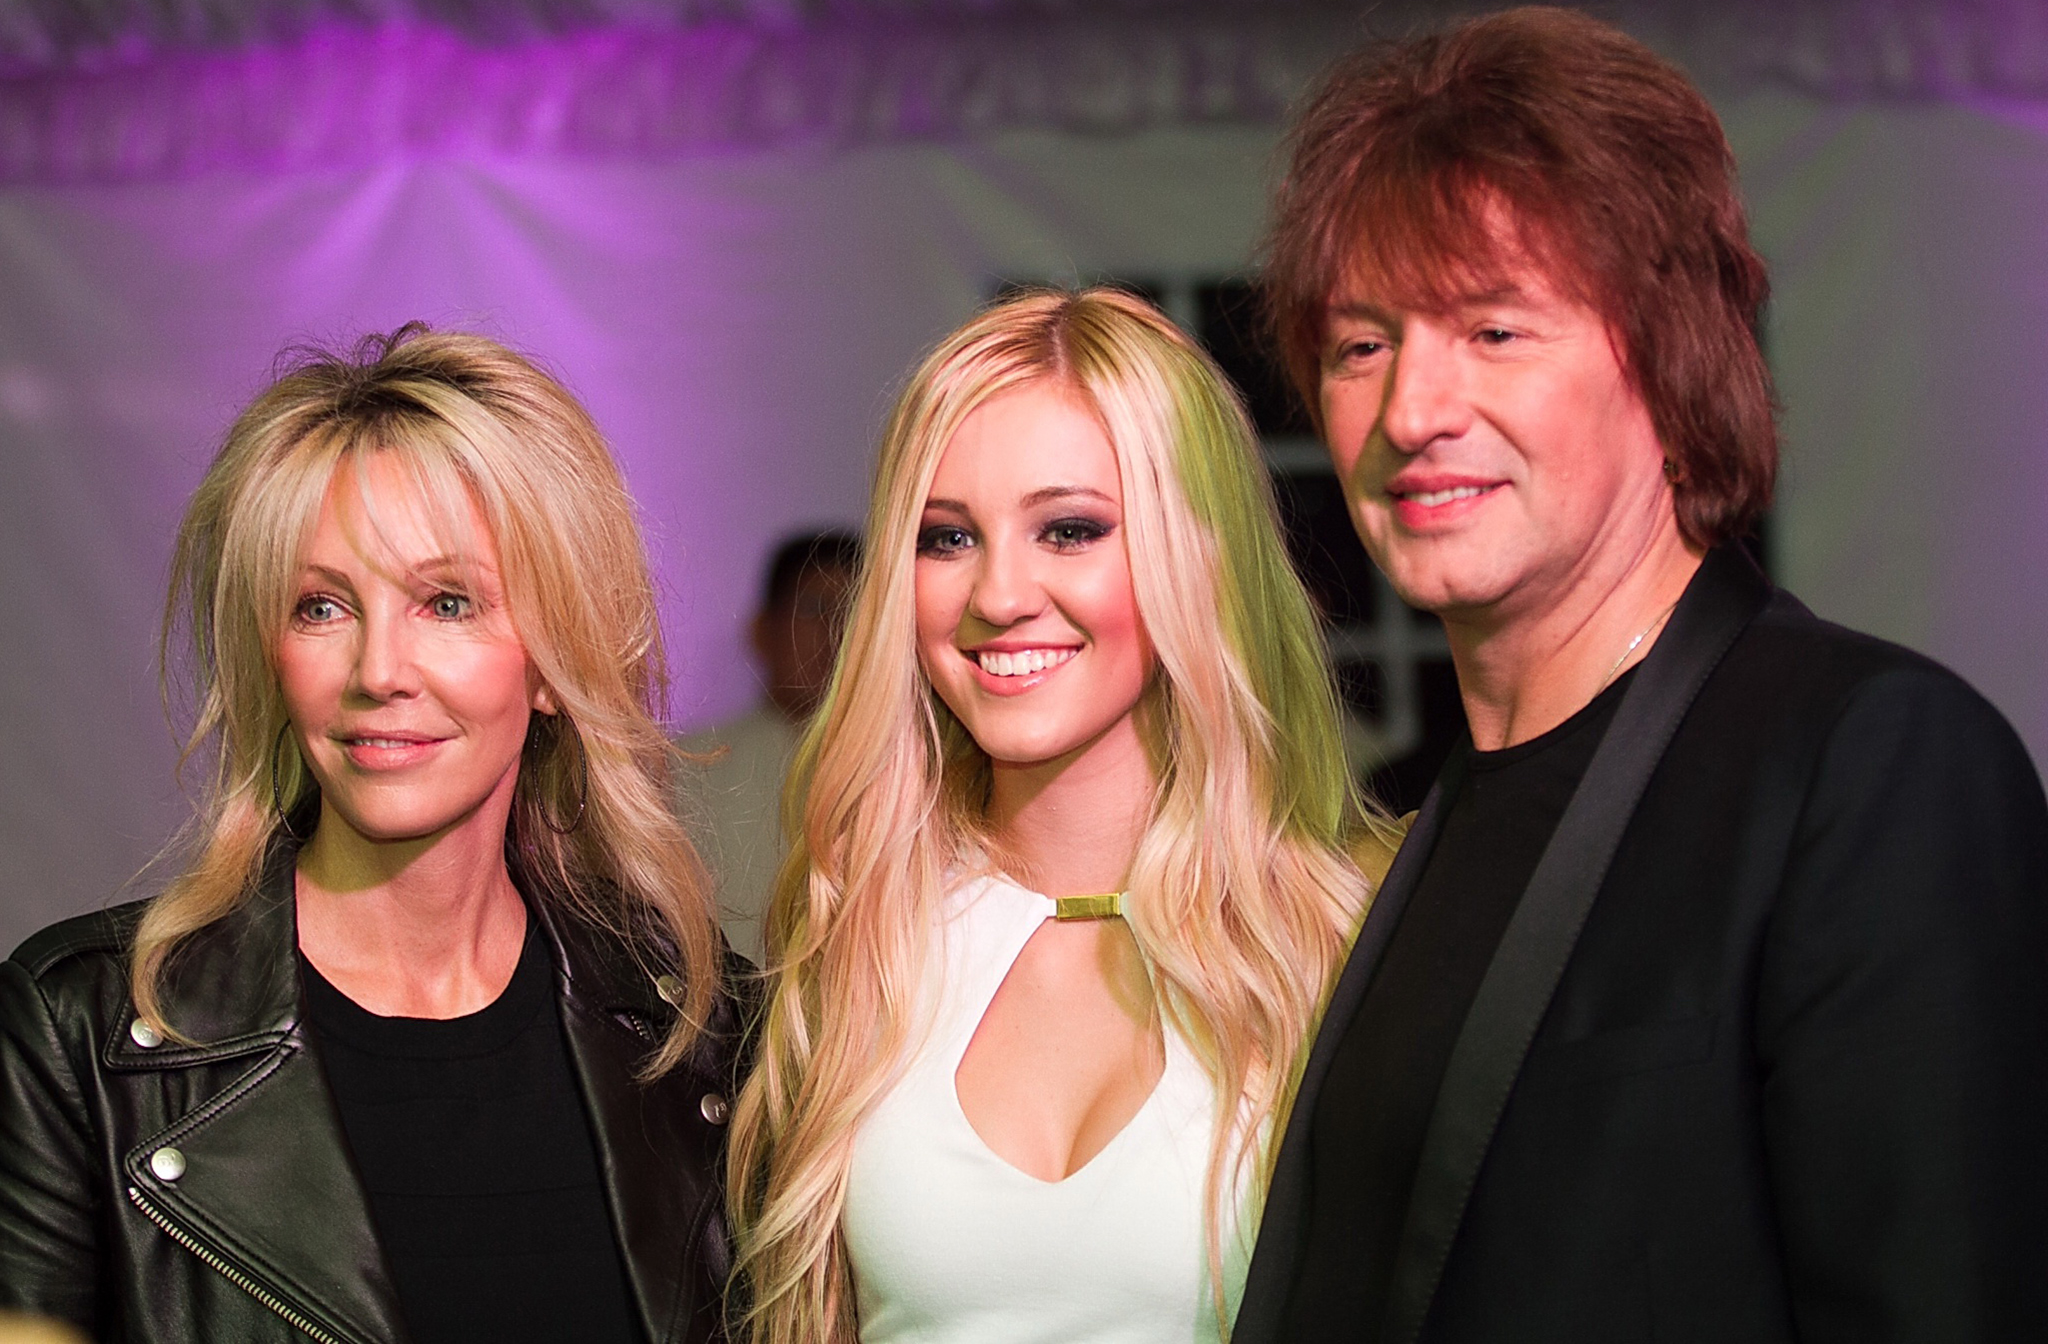 Heather Locklear and Richie Sambora with daughter Ava. (INFDaily.com)